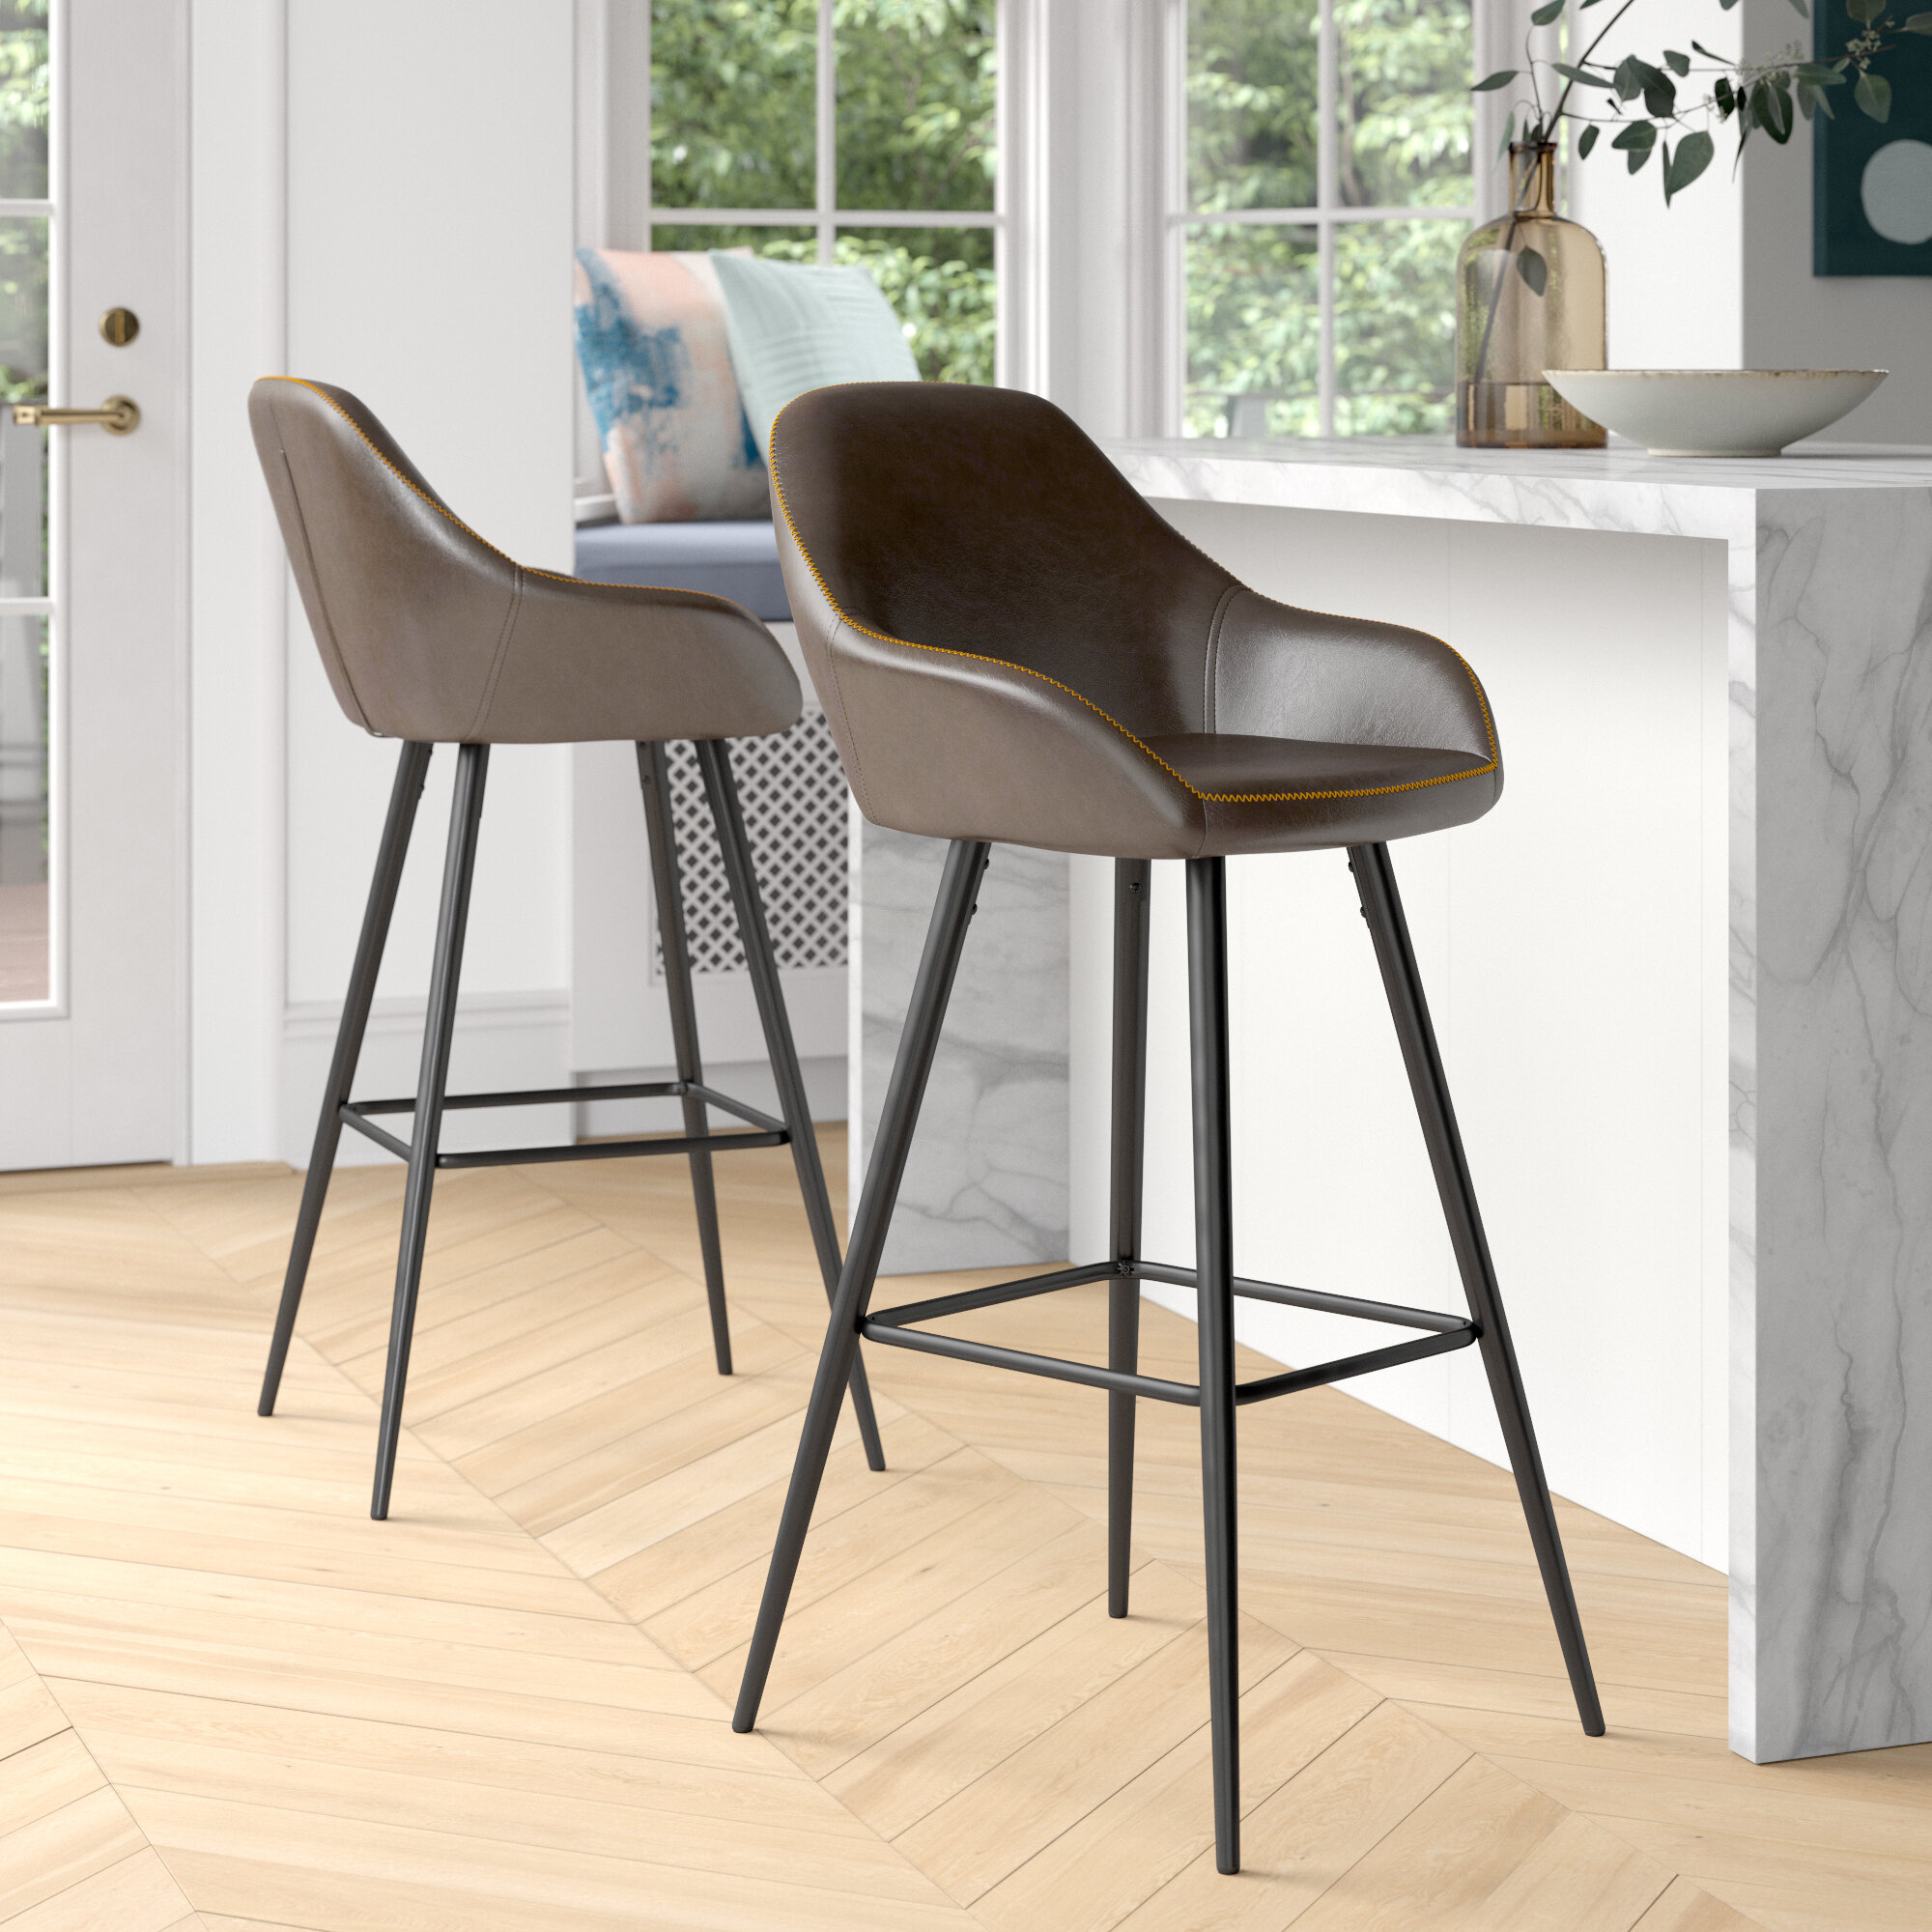 Foundstone Willow Bar Counter Stool